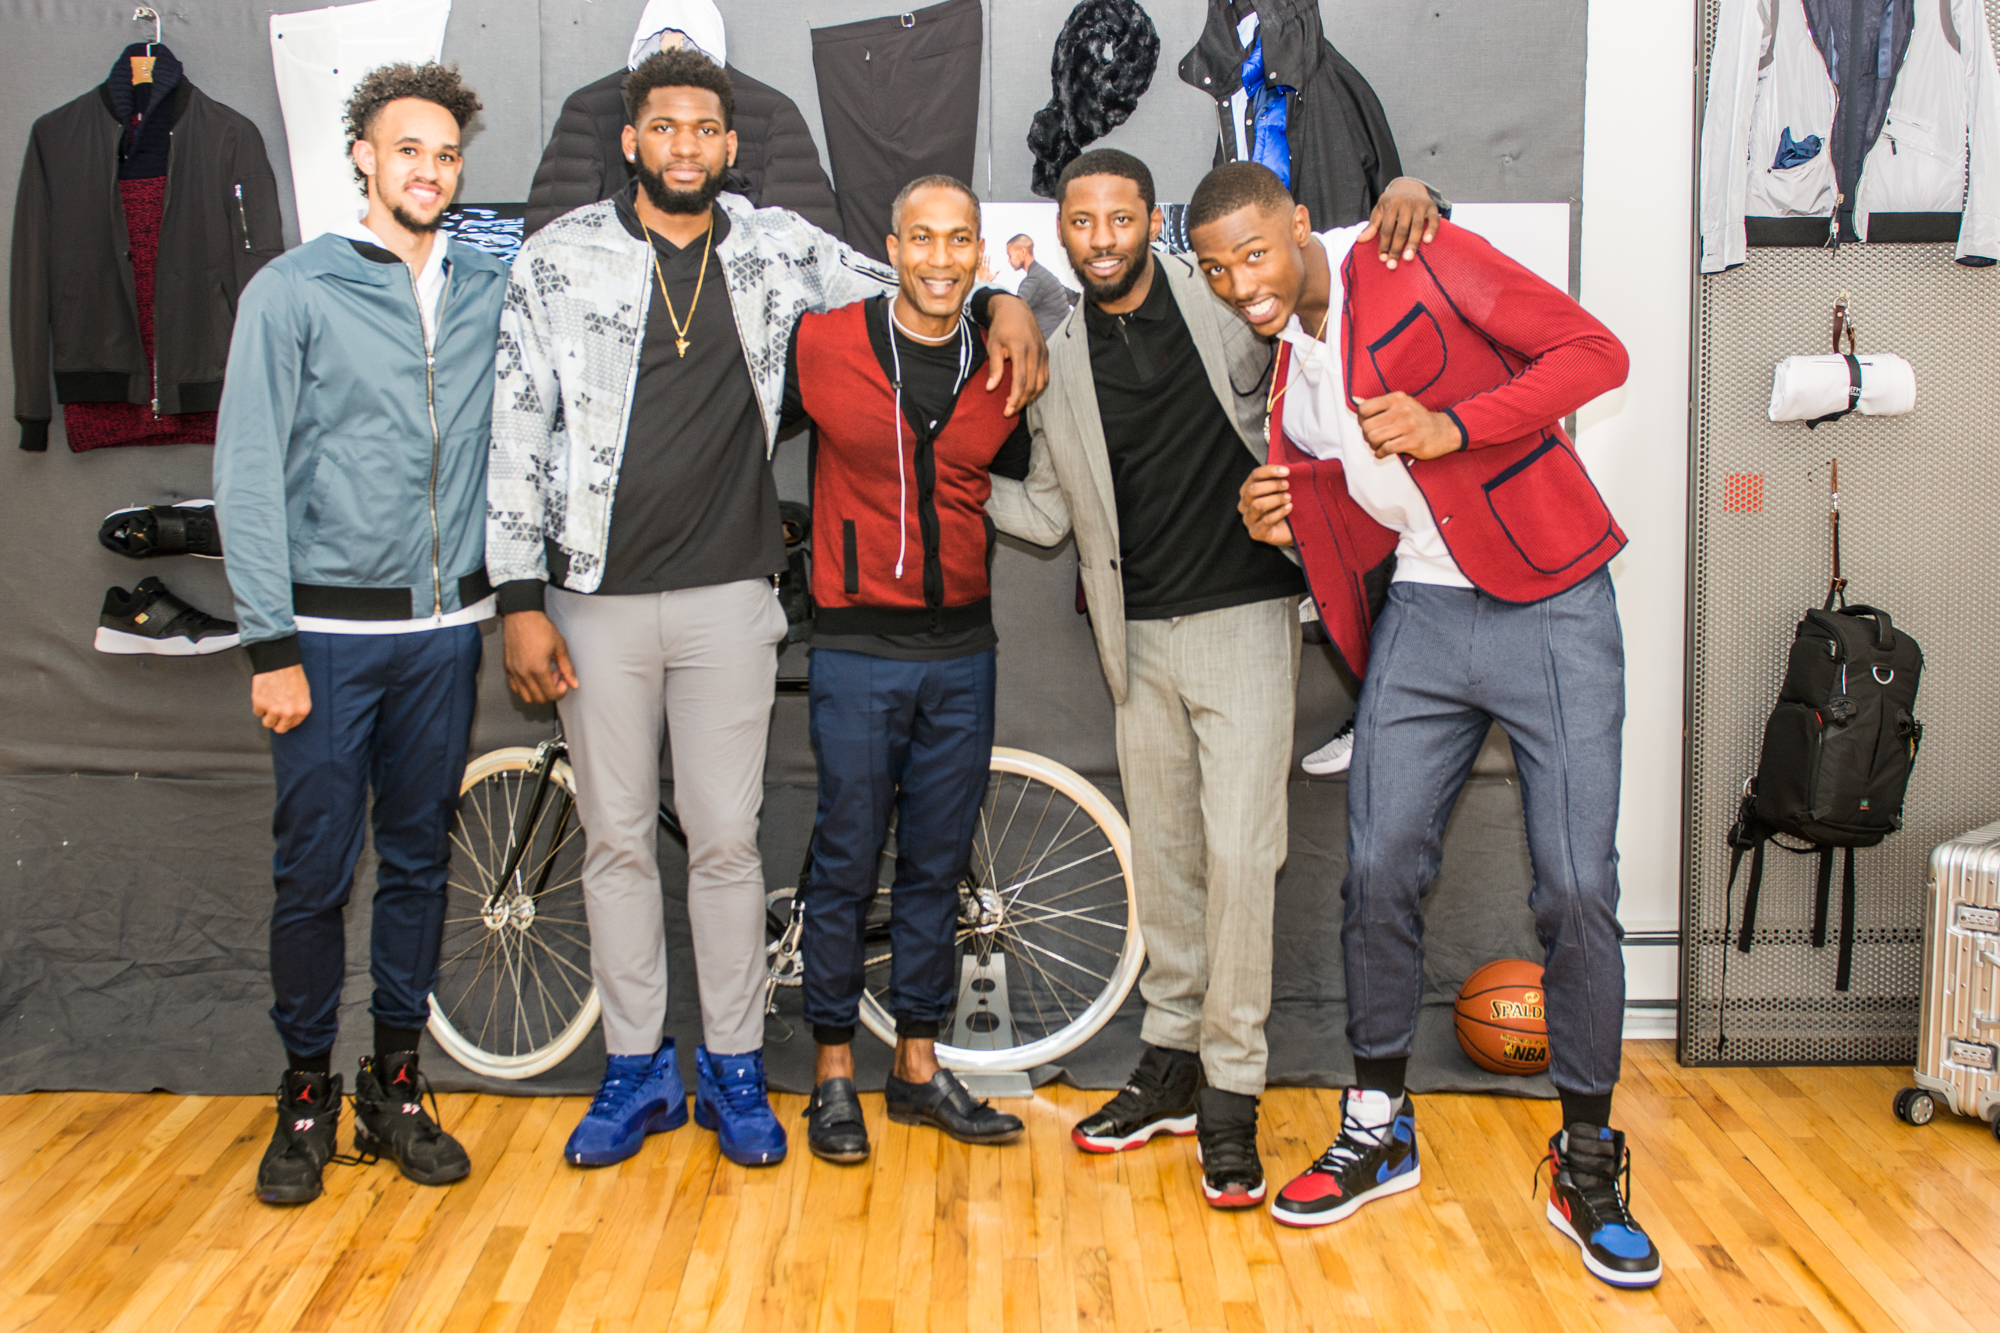 Harry Giles III, Derrick White, Scoochie Smith and Hassan Martin Visit EFM Engineered For Motion Fashion Studio